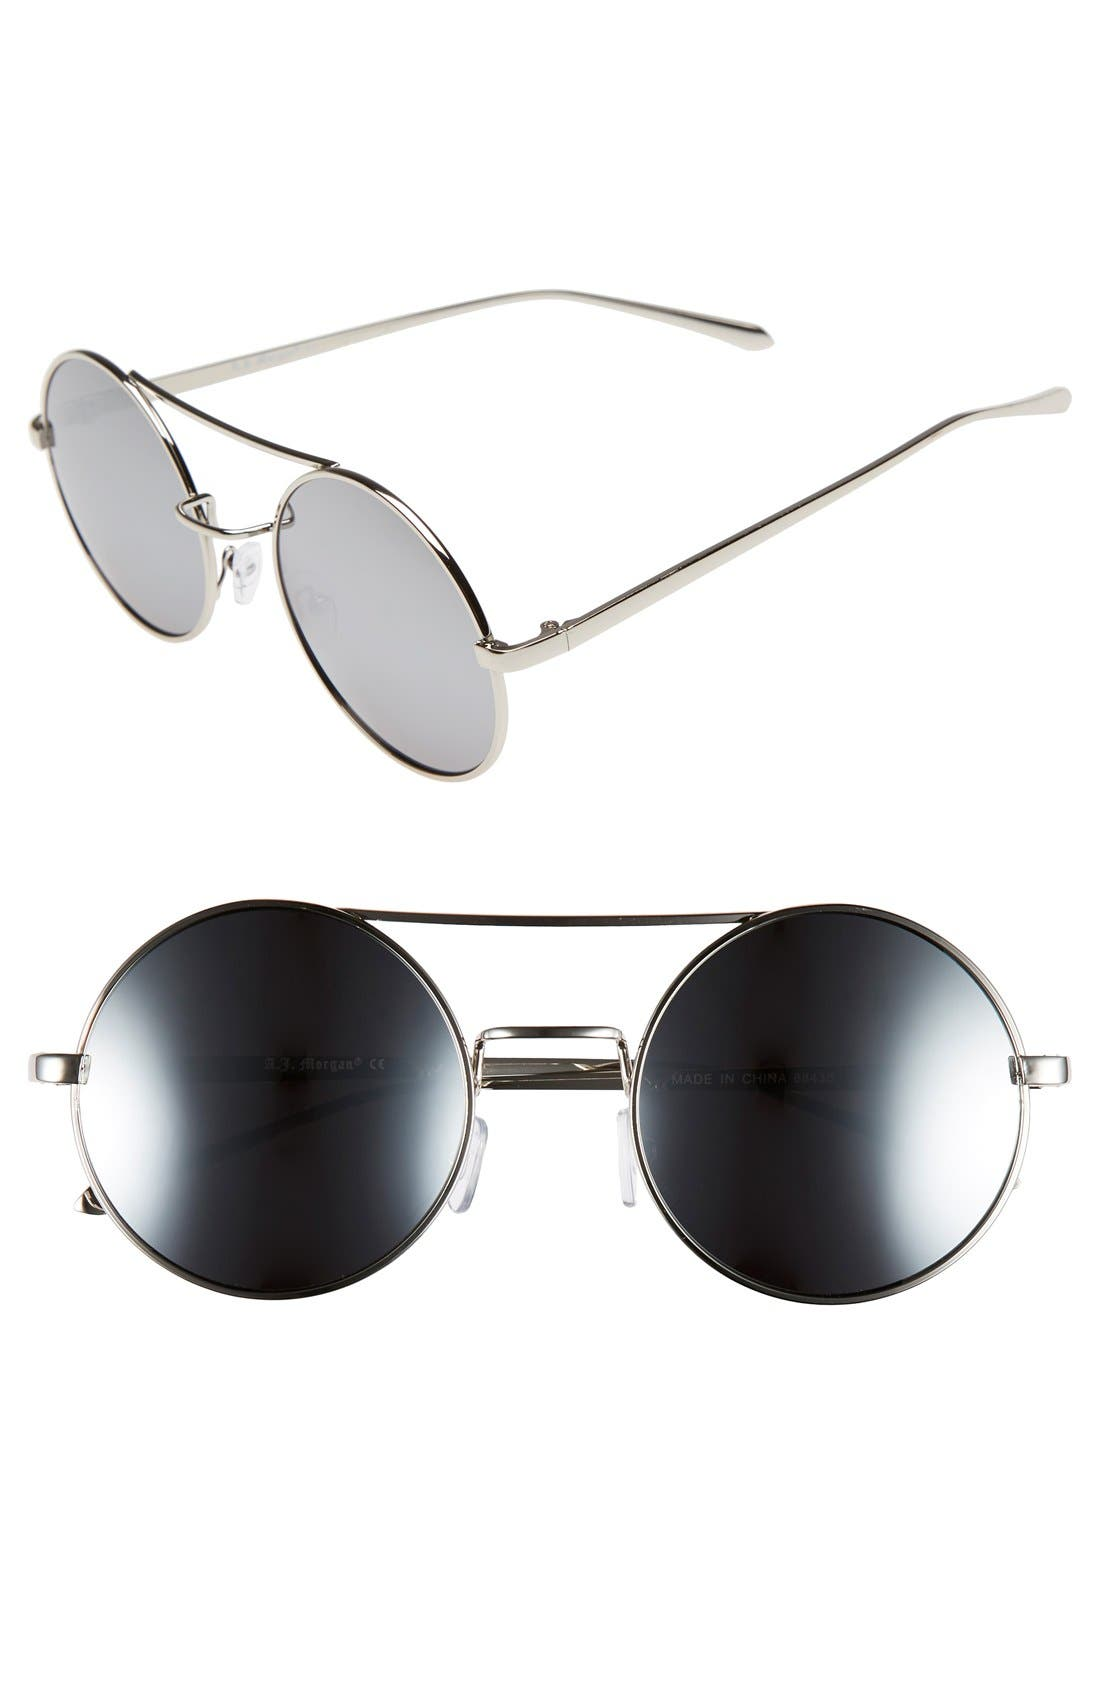 Alternate Image 1 Selected - A.J. Morgan 'Eclipse' 54mm Round Mirror Lens Sunglasses